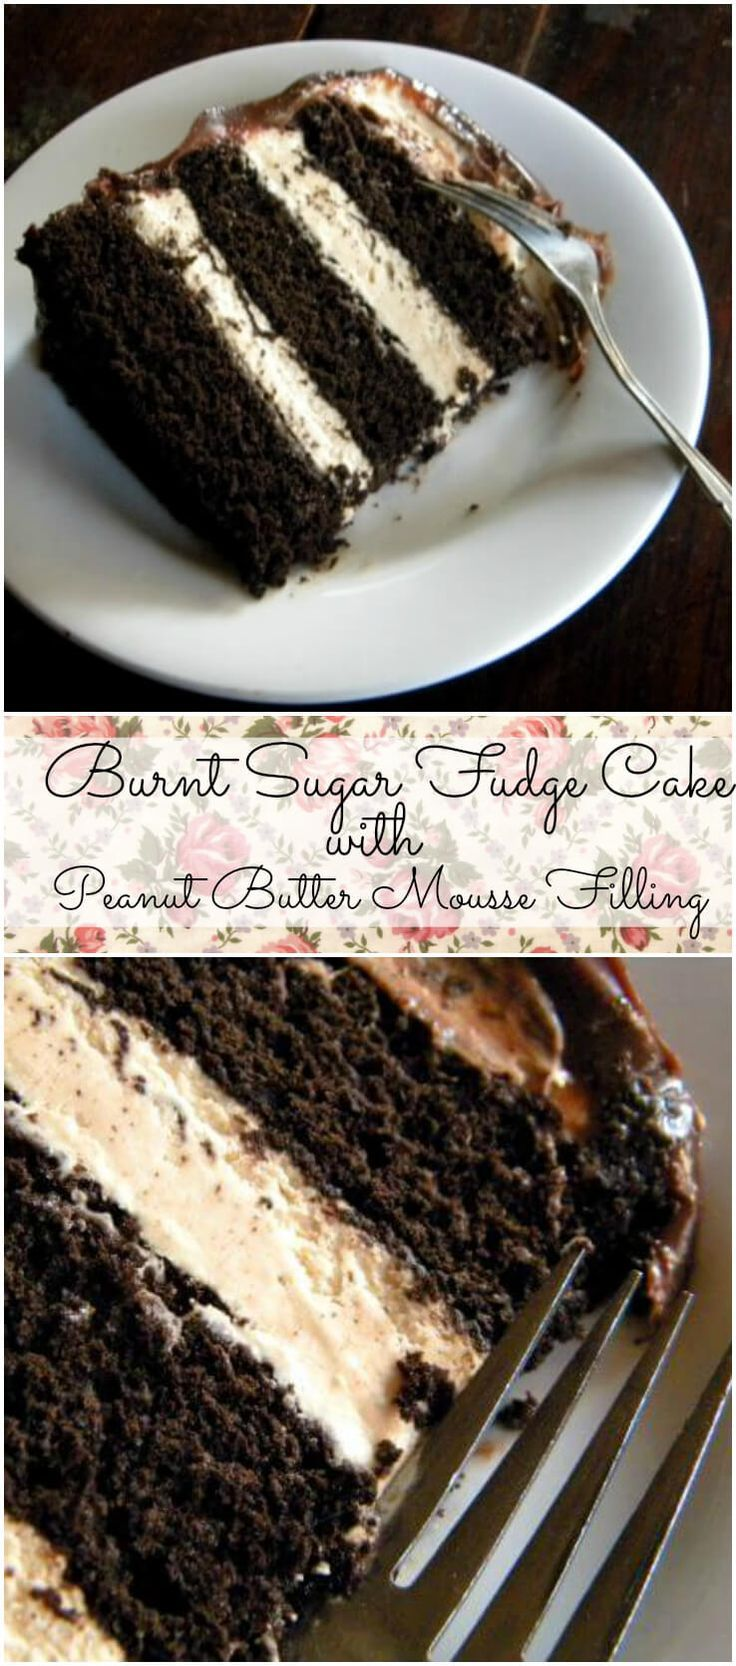 Burnt Sugar Fudge Layer Cake is an old fashioned chocolate cake with a drift of silky peanut butter mousse between each tender layer. From RestlessChipotle.com